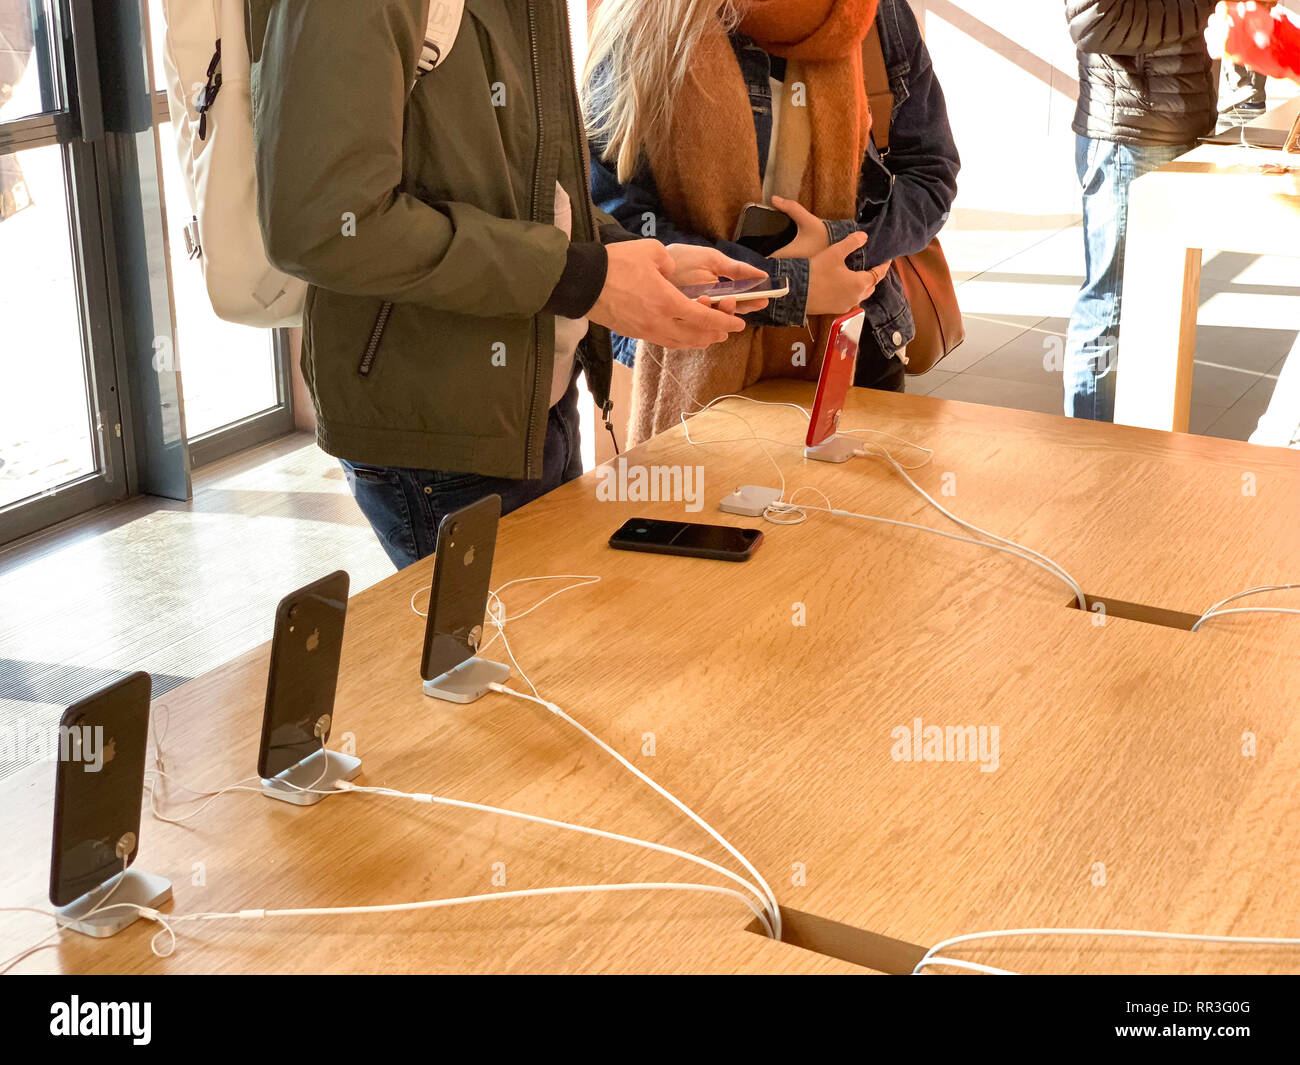 PARIS, FRANCE - OCT 26, 2018: French couple admiring the latest iPhone XR smartphone in Apple Store Computers during the launch day - Stock Image